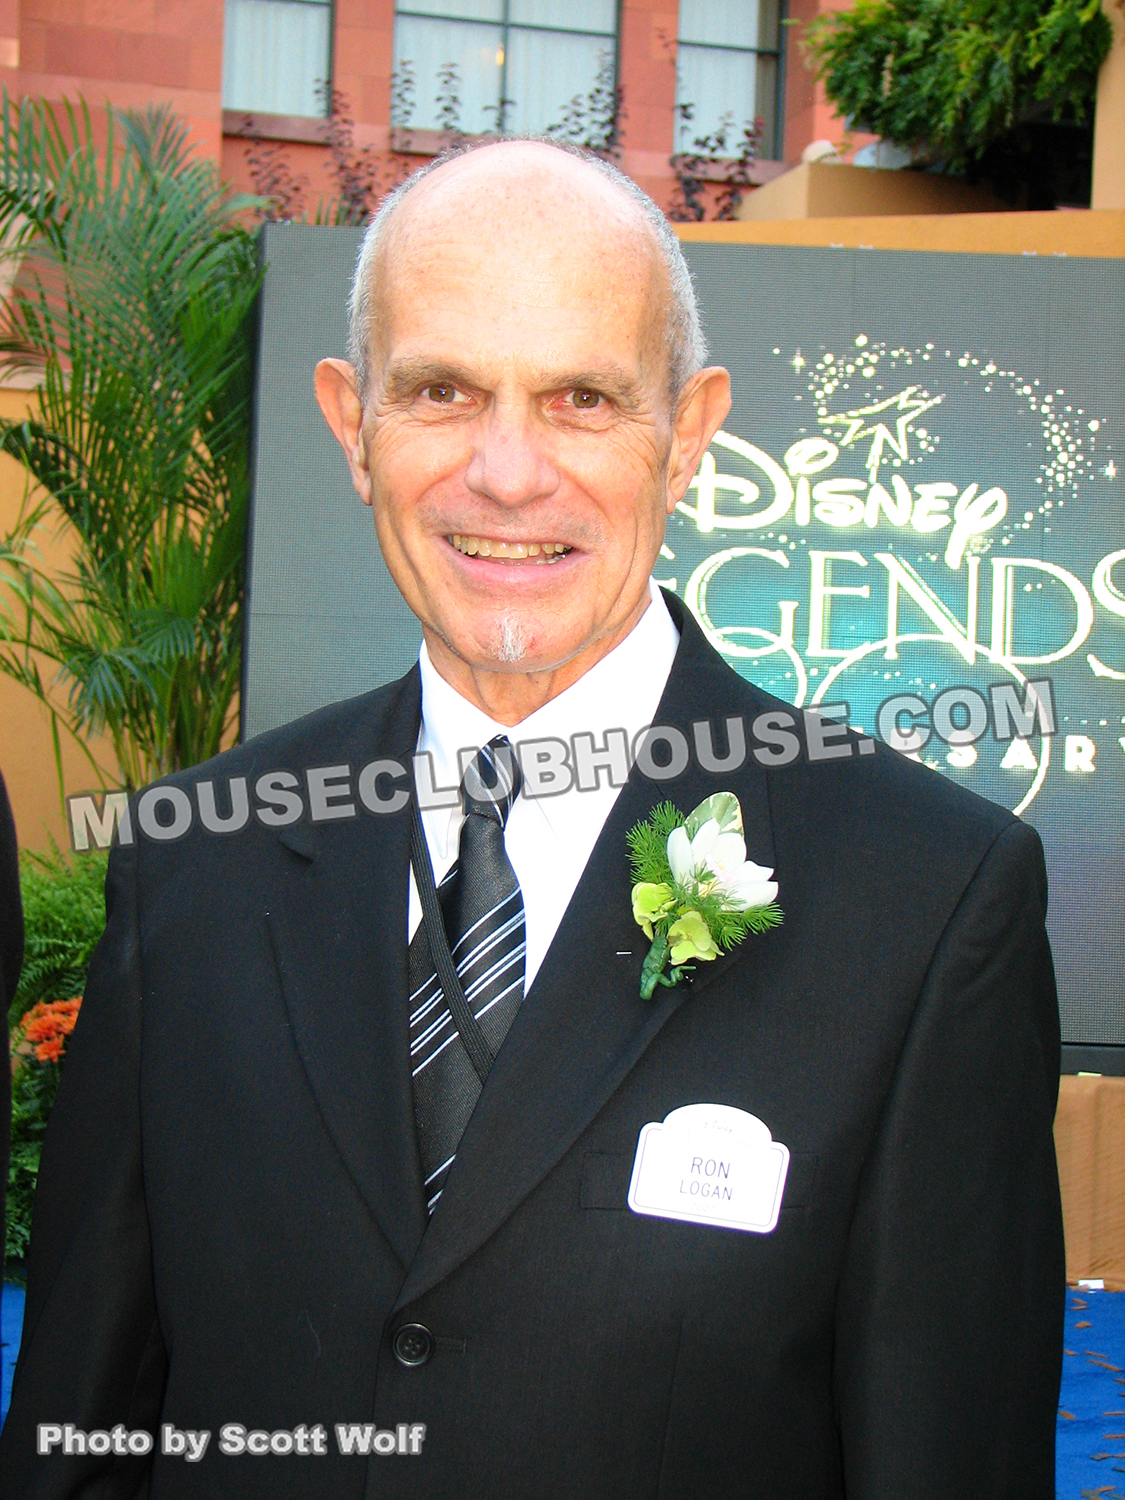 Ron Logan at the Disney Legends ceremony